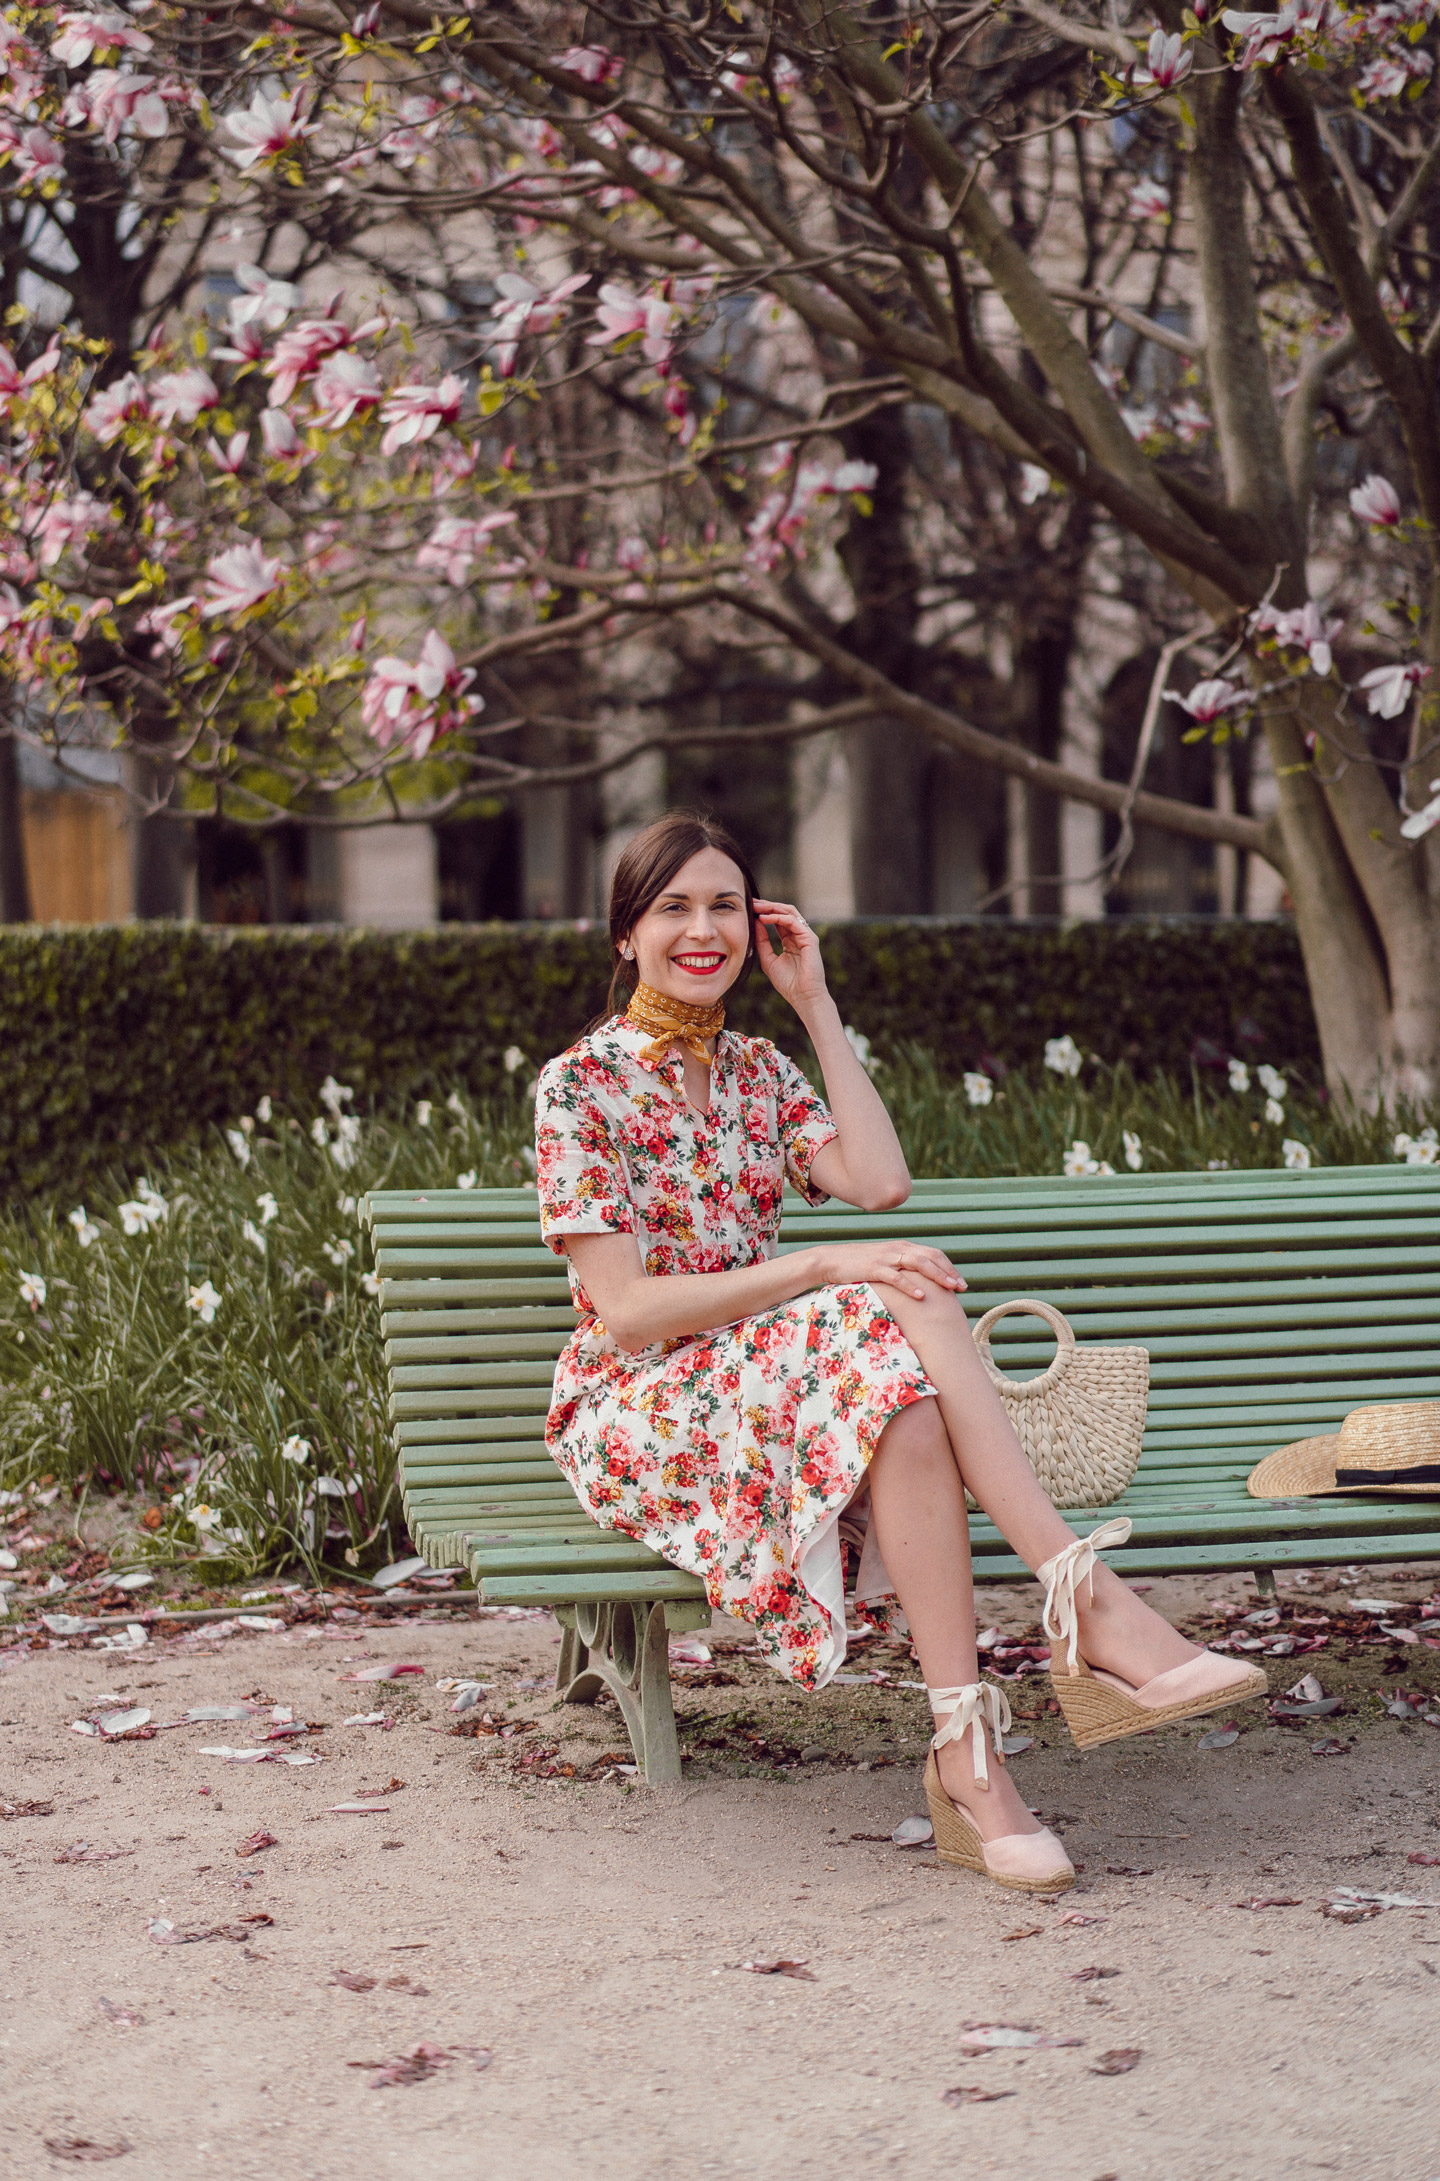 daphne-moreau-mode-and-the-city--palais-royal-robe-sezane-lexia-3